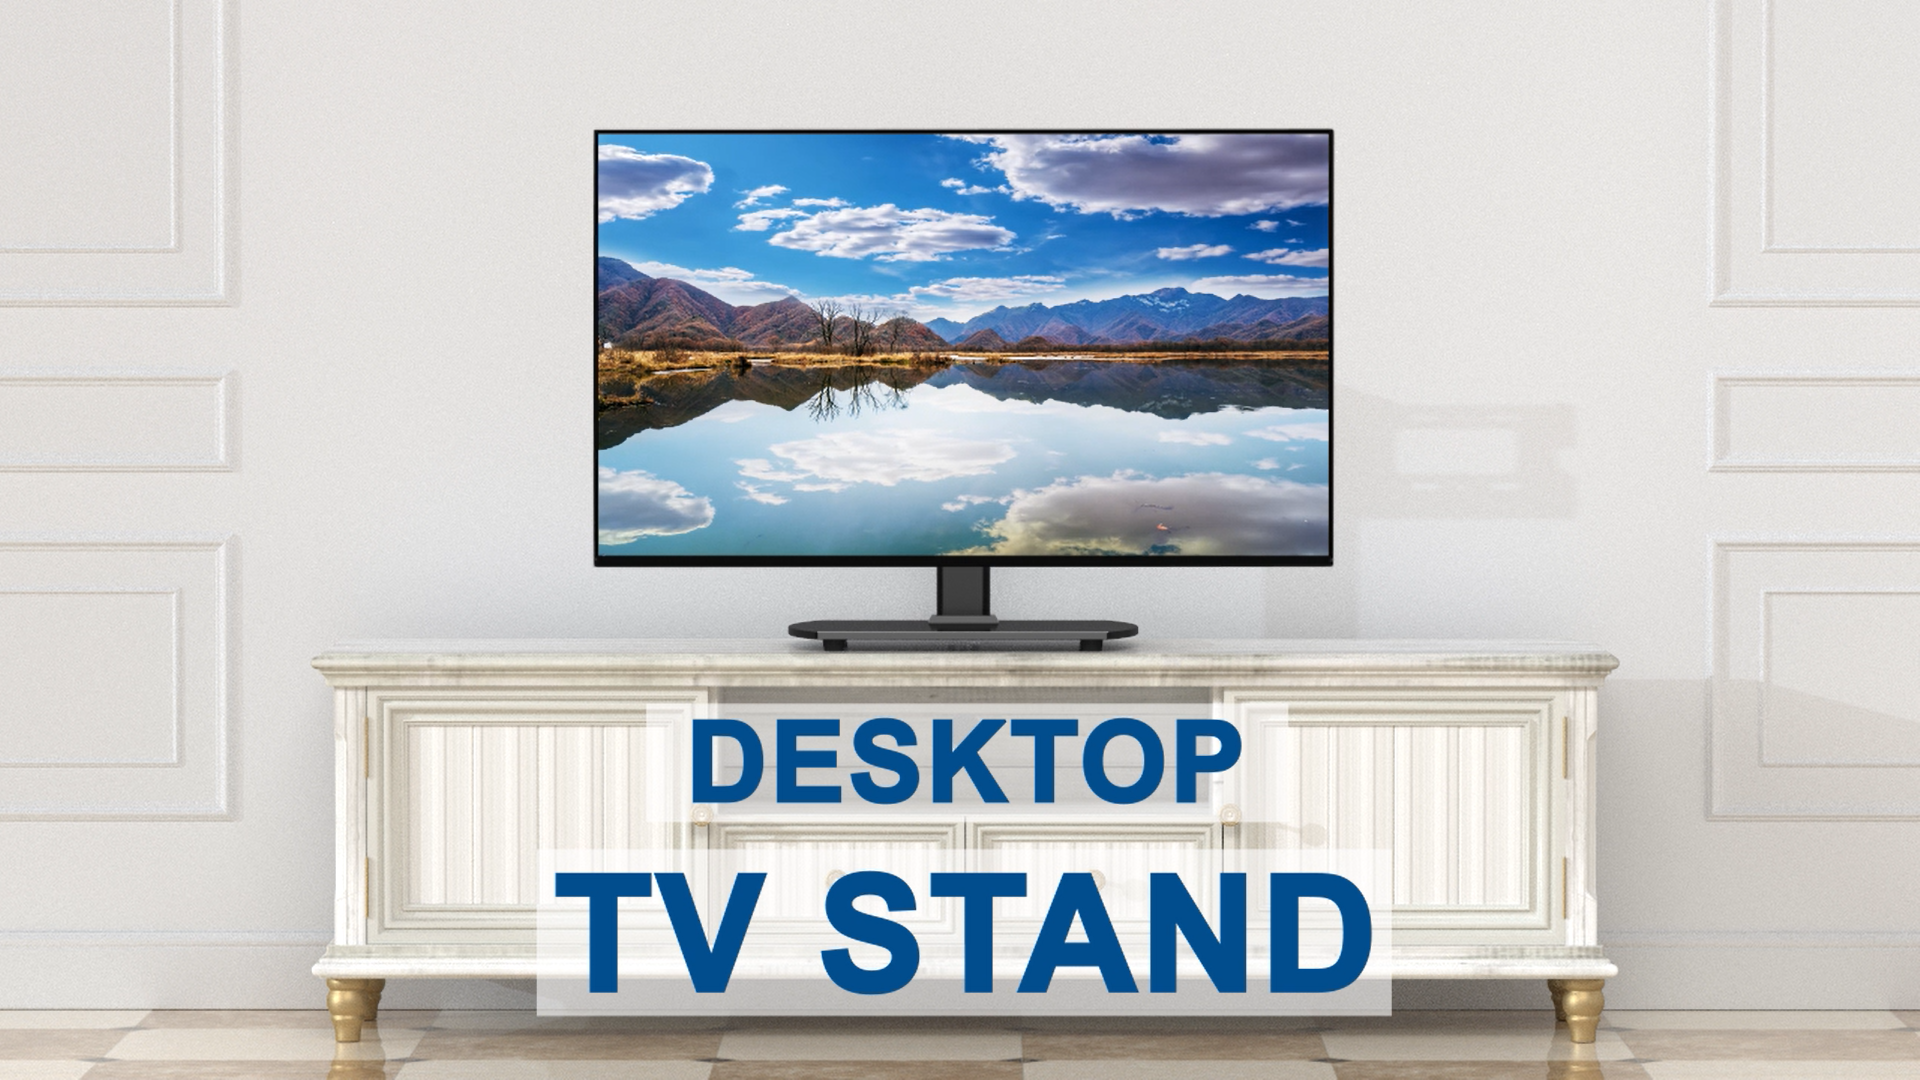 Rfiver Swivel Tabletop Tv Base Stand For Most 32 55 Amazon Co Uk Electronics